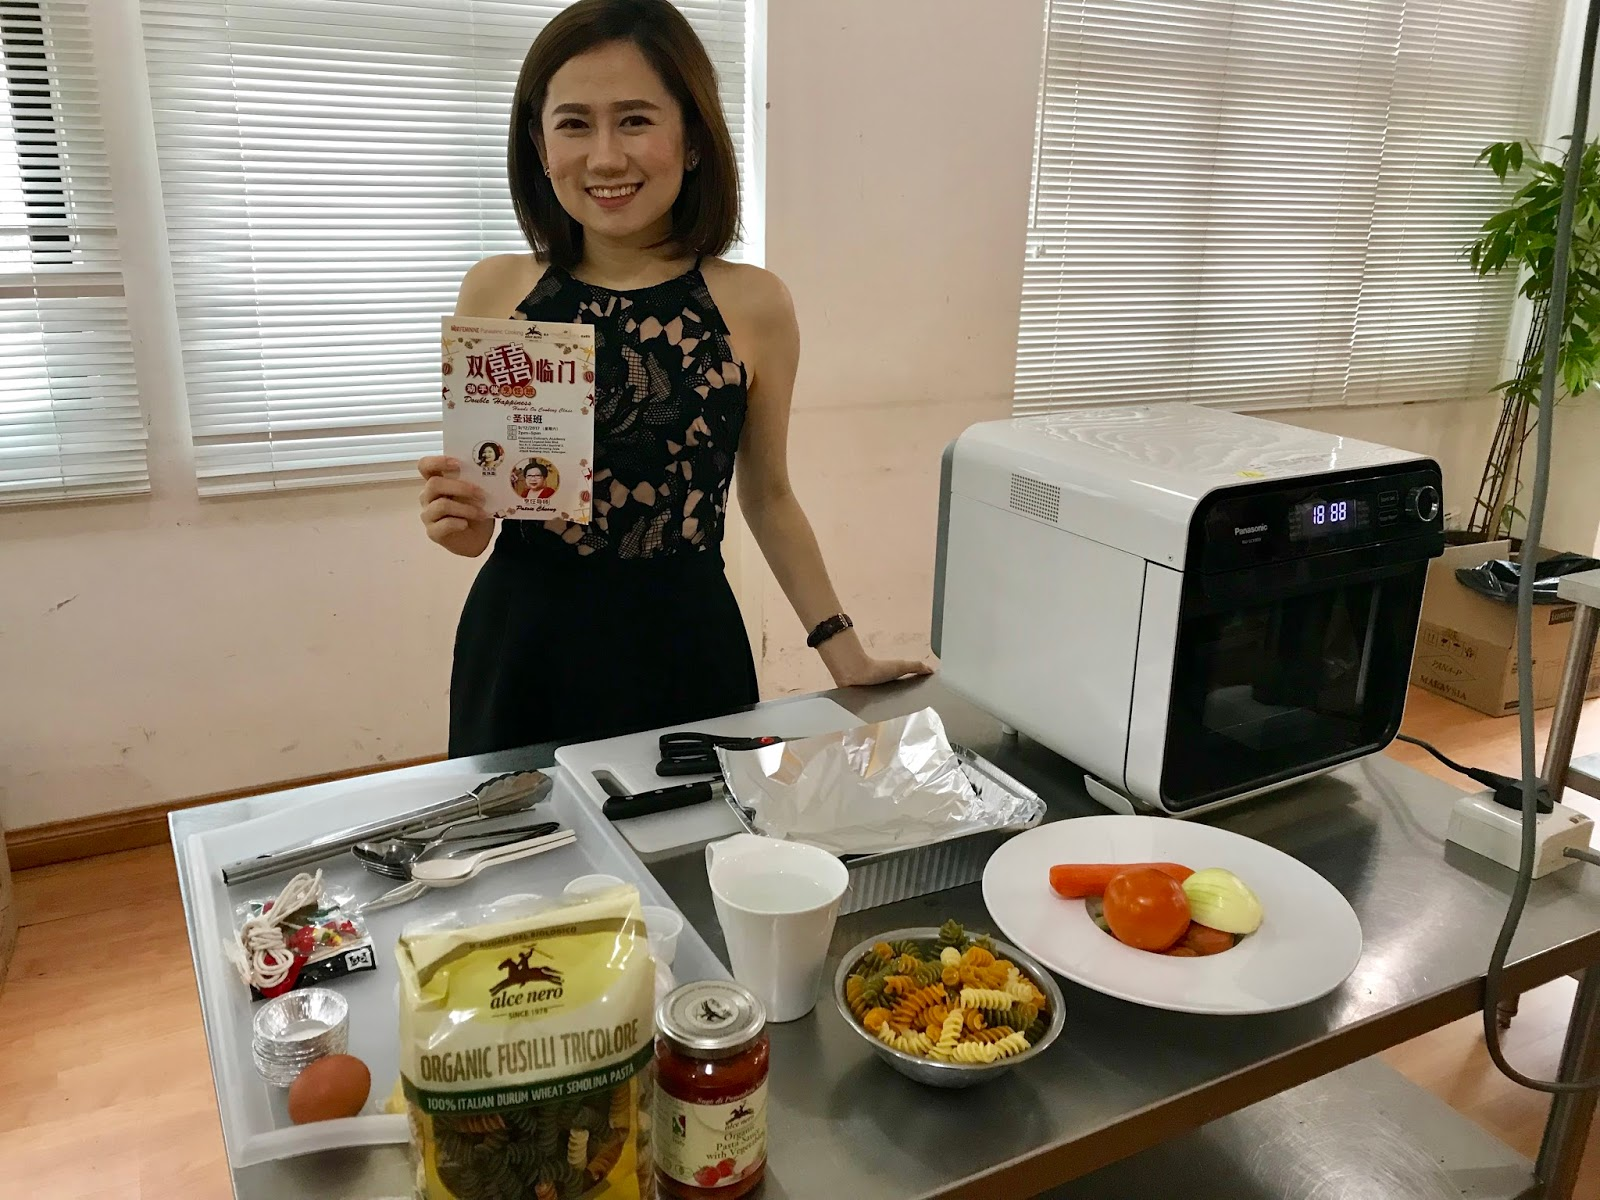 [Cooking Event] Double Happiness Hands On Cooking Class @ Cilantro Culinary Academy in USJ